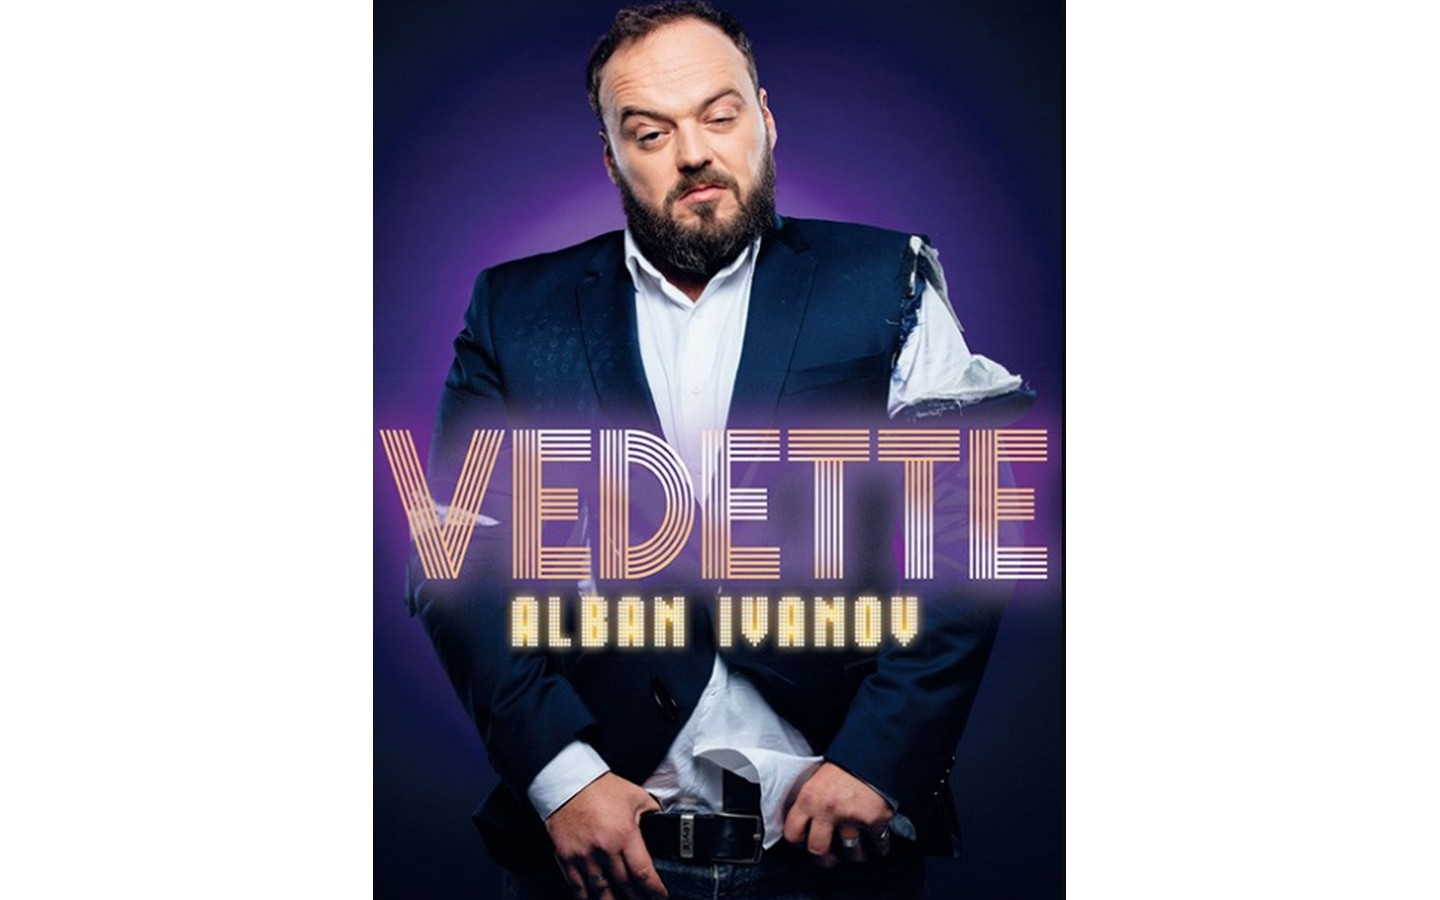 Report – Spectacle : Alban Ivanov – Vedette